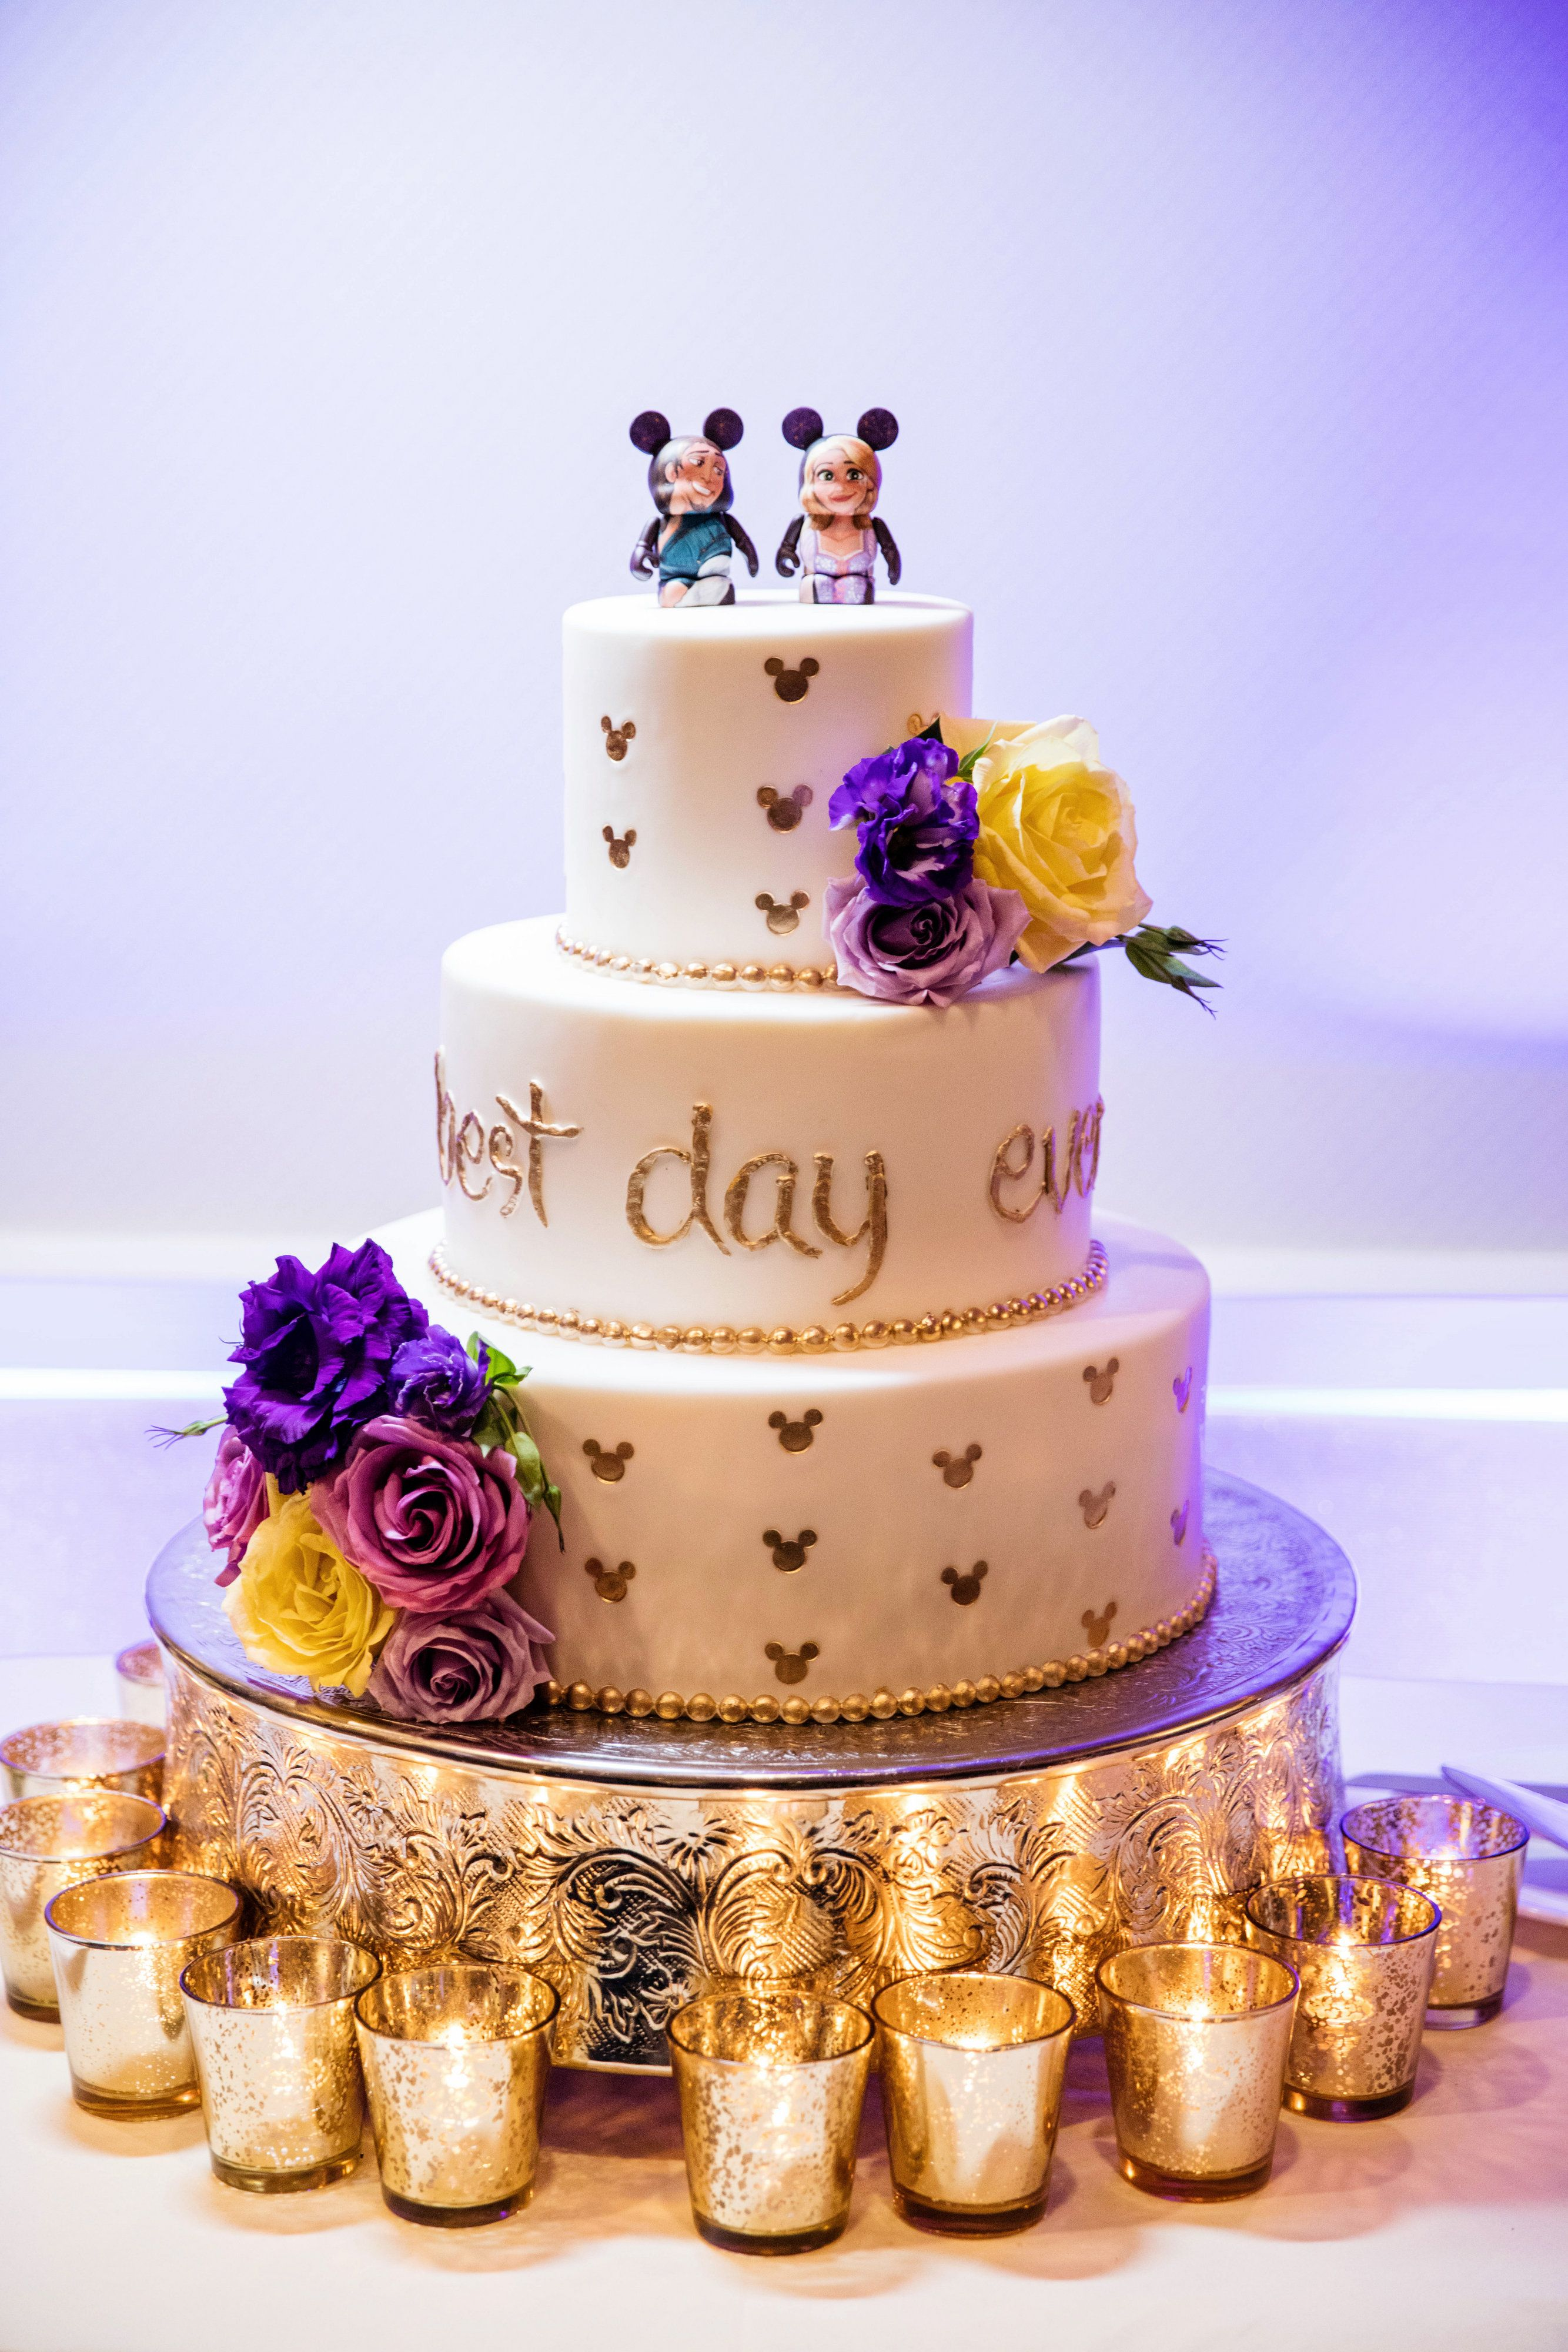 A Tangled Inspired Wedding Cake For Your Best Day Ever Disney